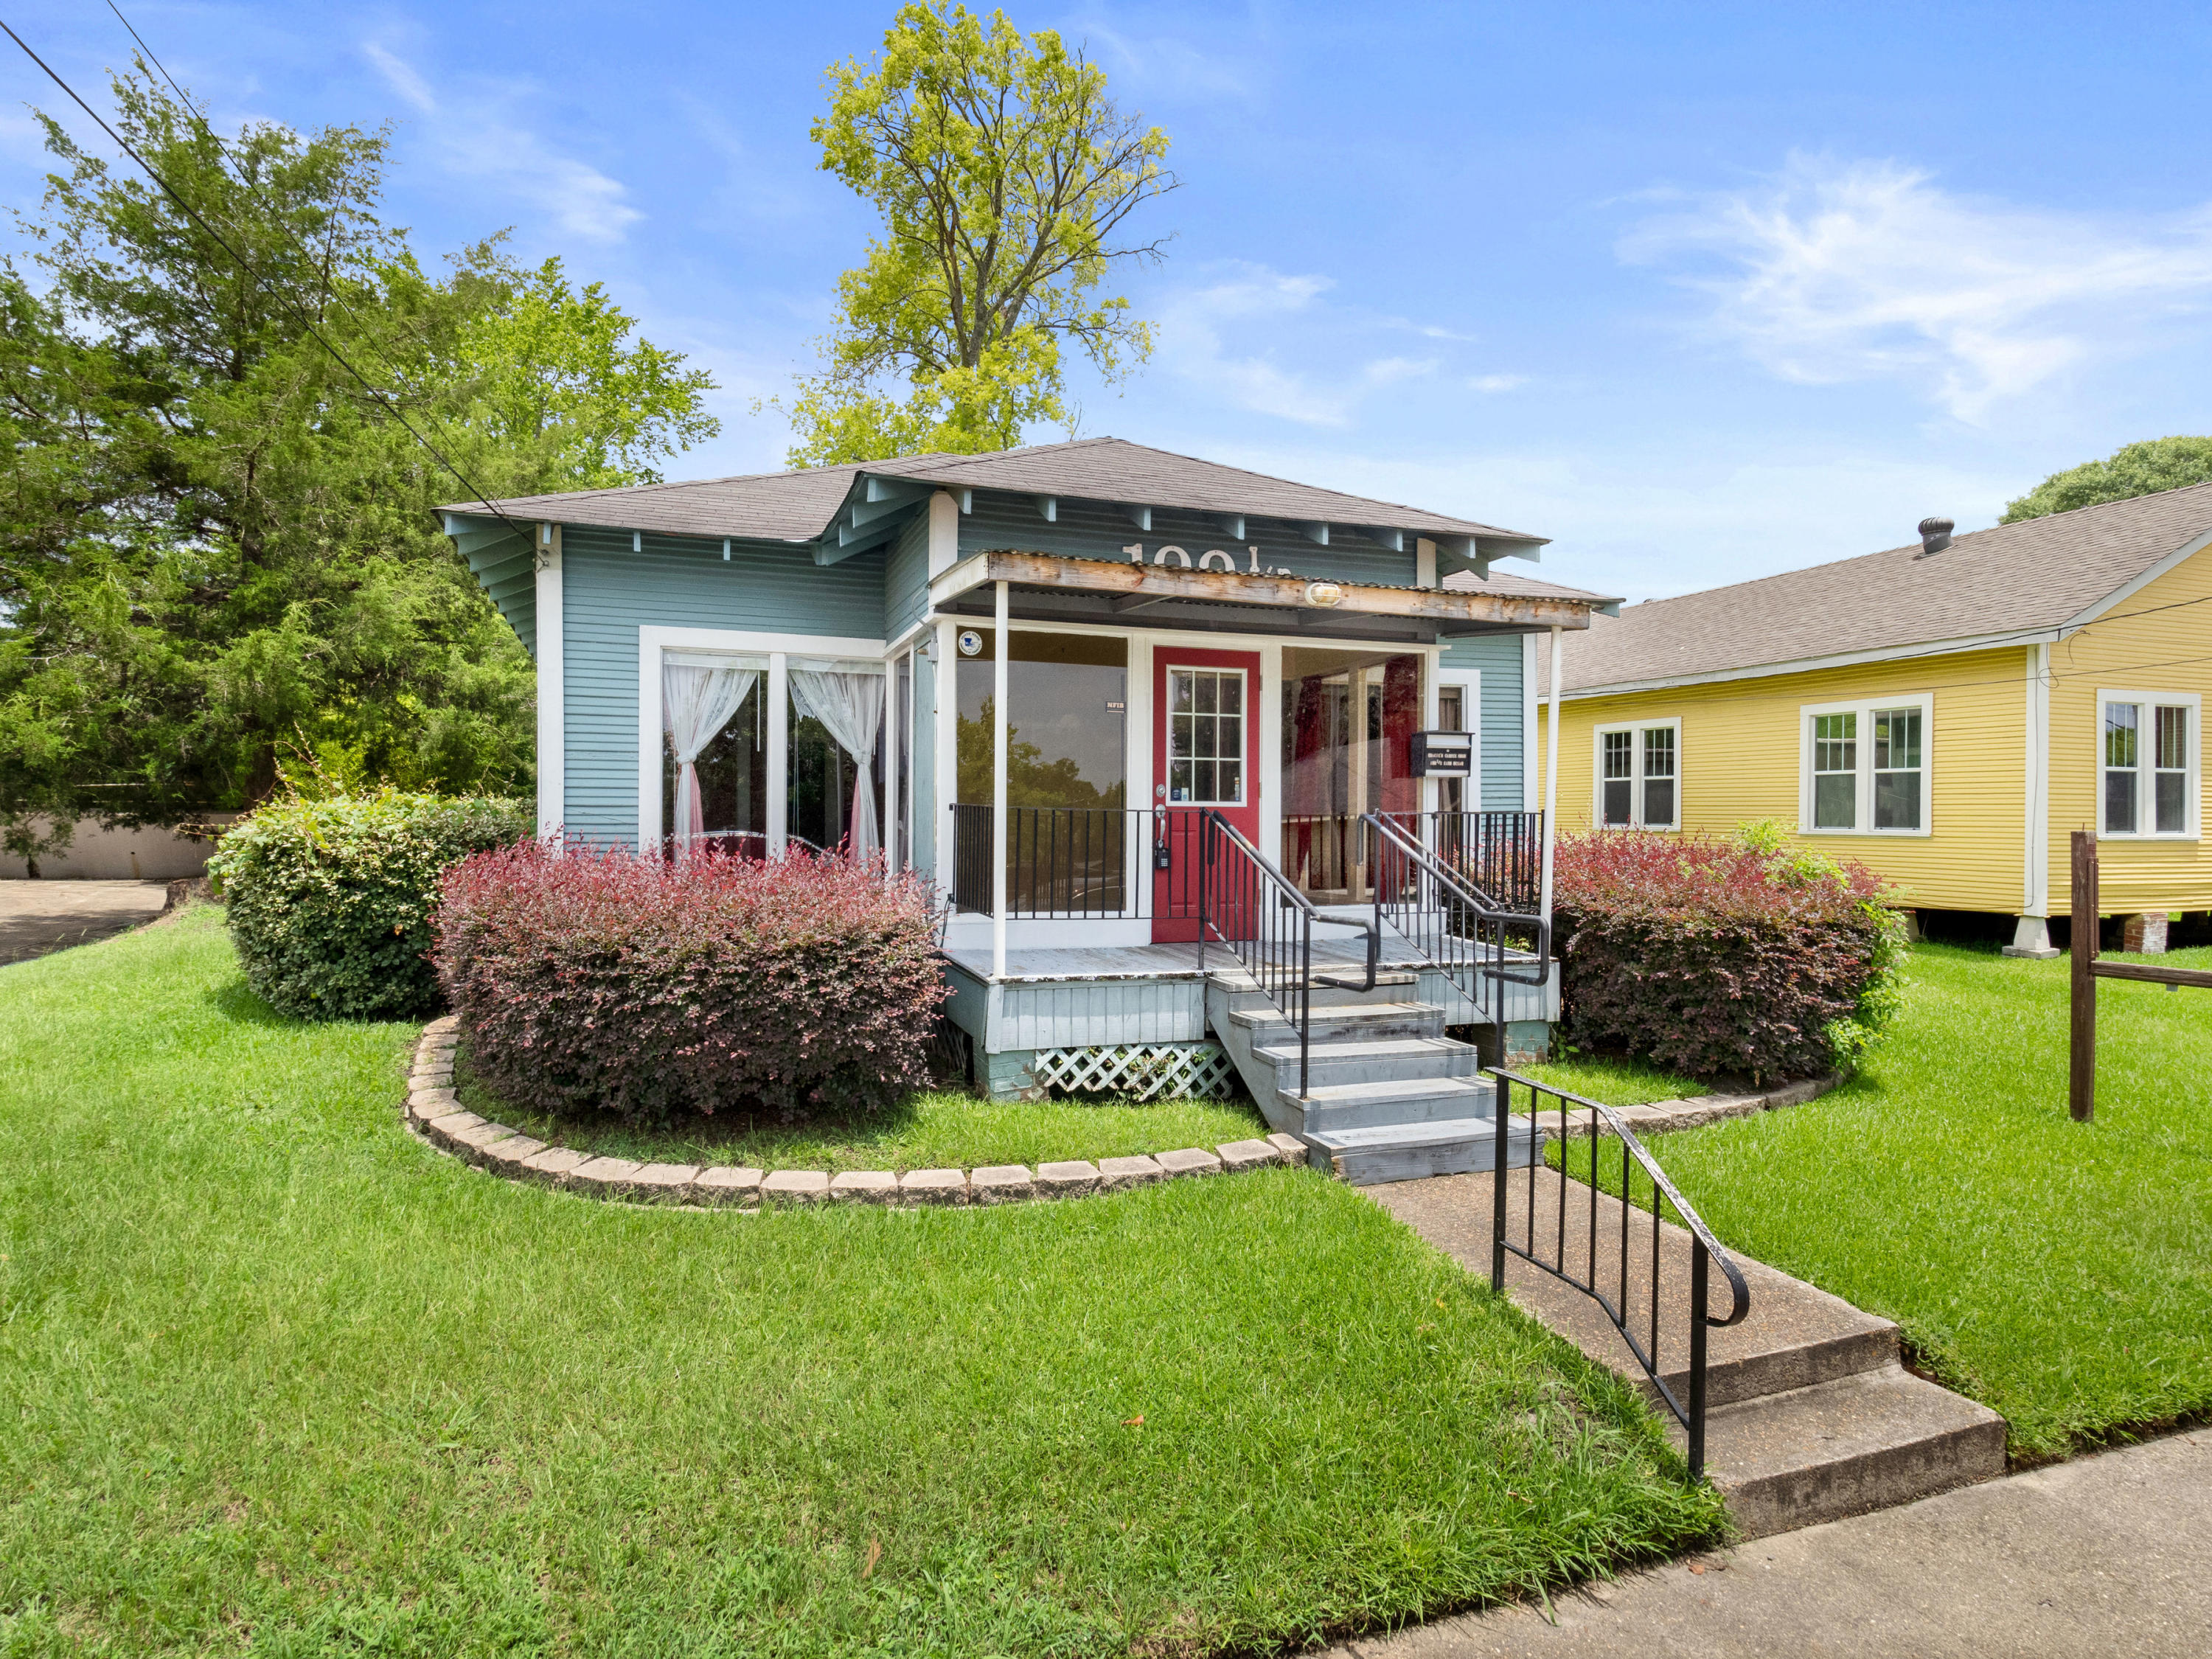 100 1/2 East Texas St: ACT FAST ON THIS ONE!